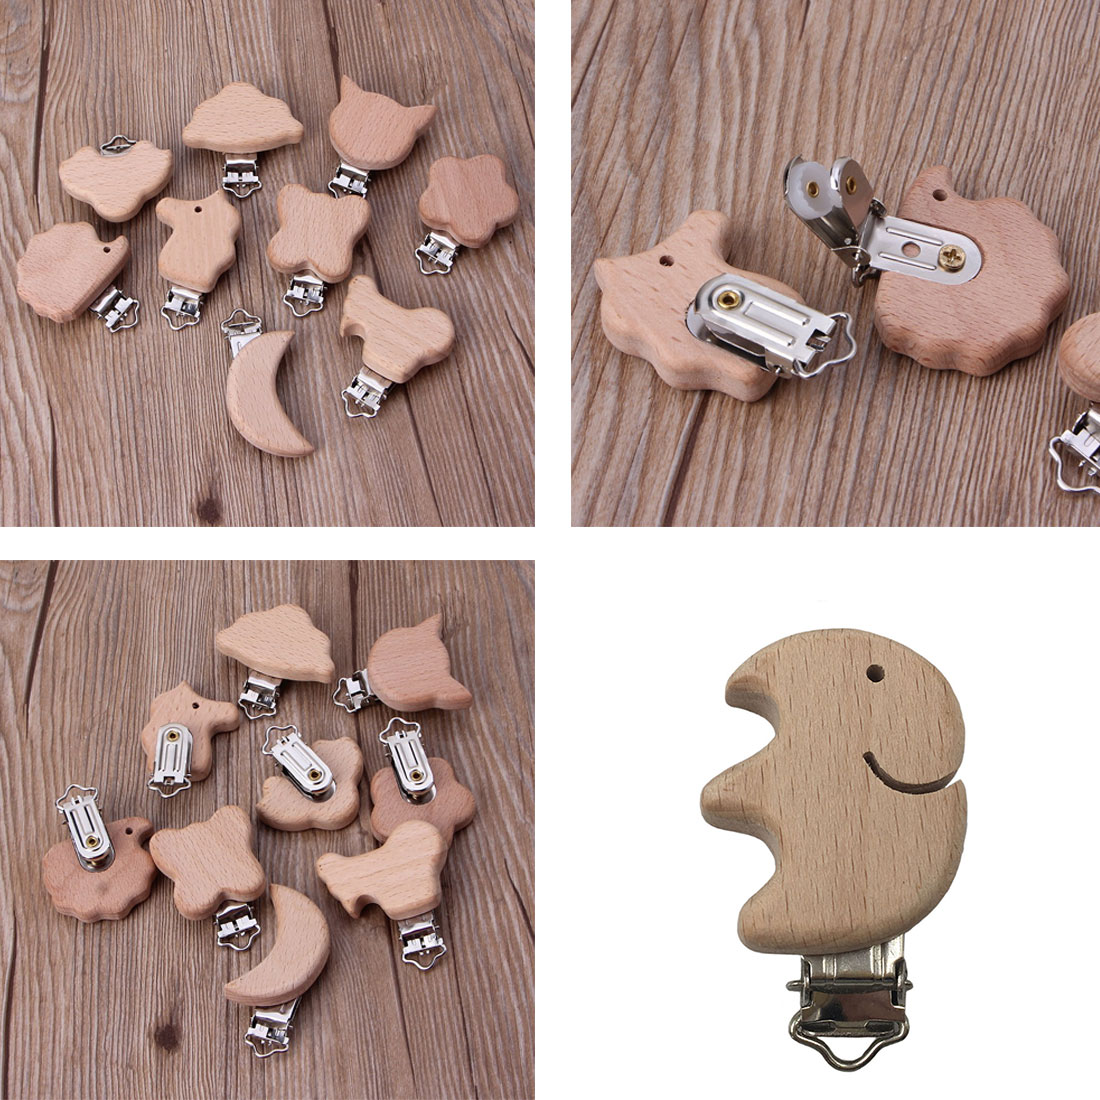 5pcs Cute Shape Beech Wood Pacifier Clip Small Elephant Star Heart shaped Bird Baby DIY Preferred Nipple Chain Accessories in Pacifiers Leashes Cases from Mother Kids